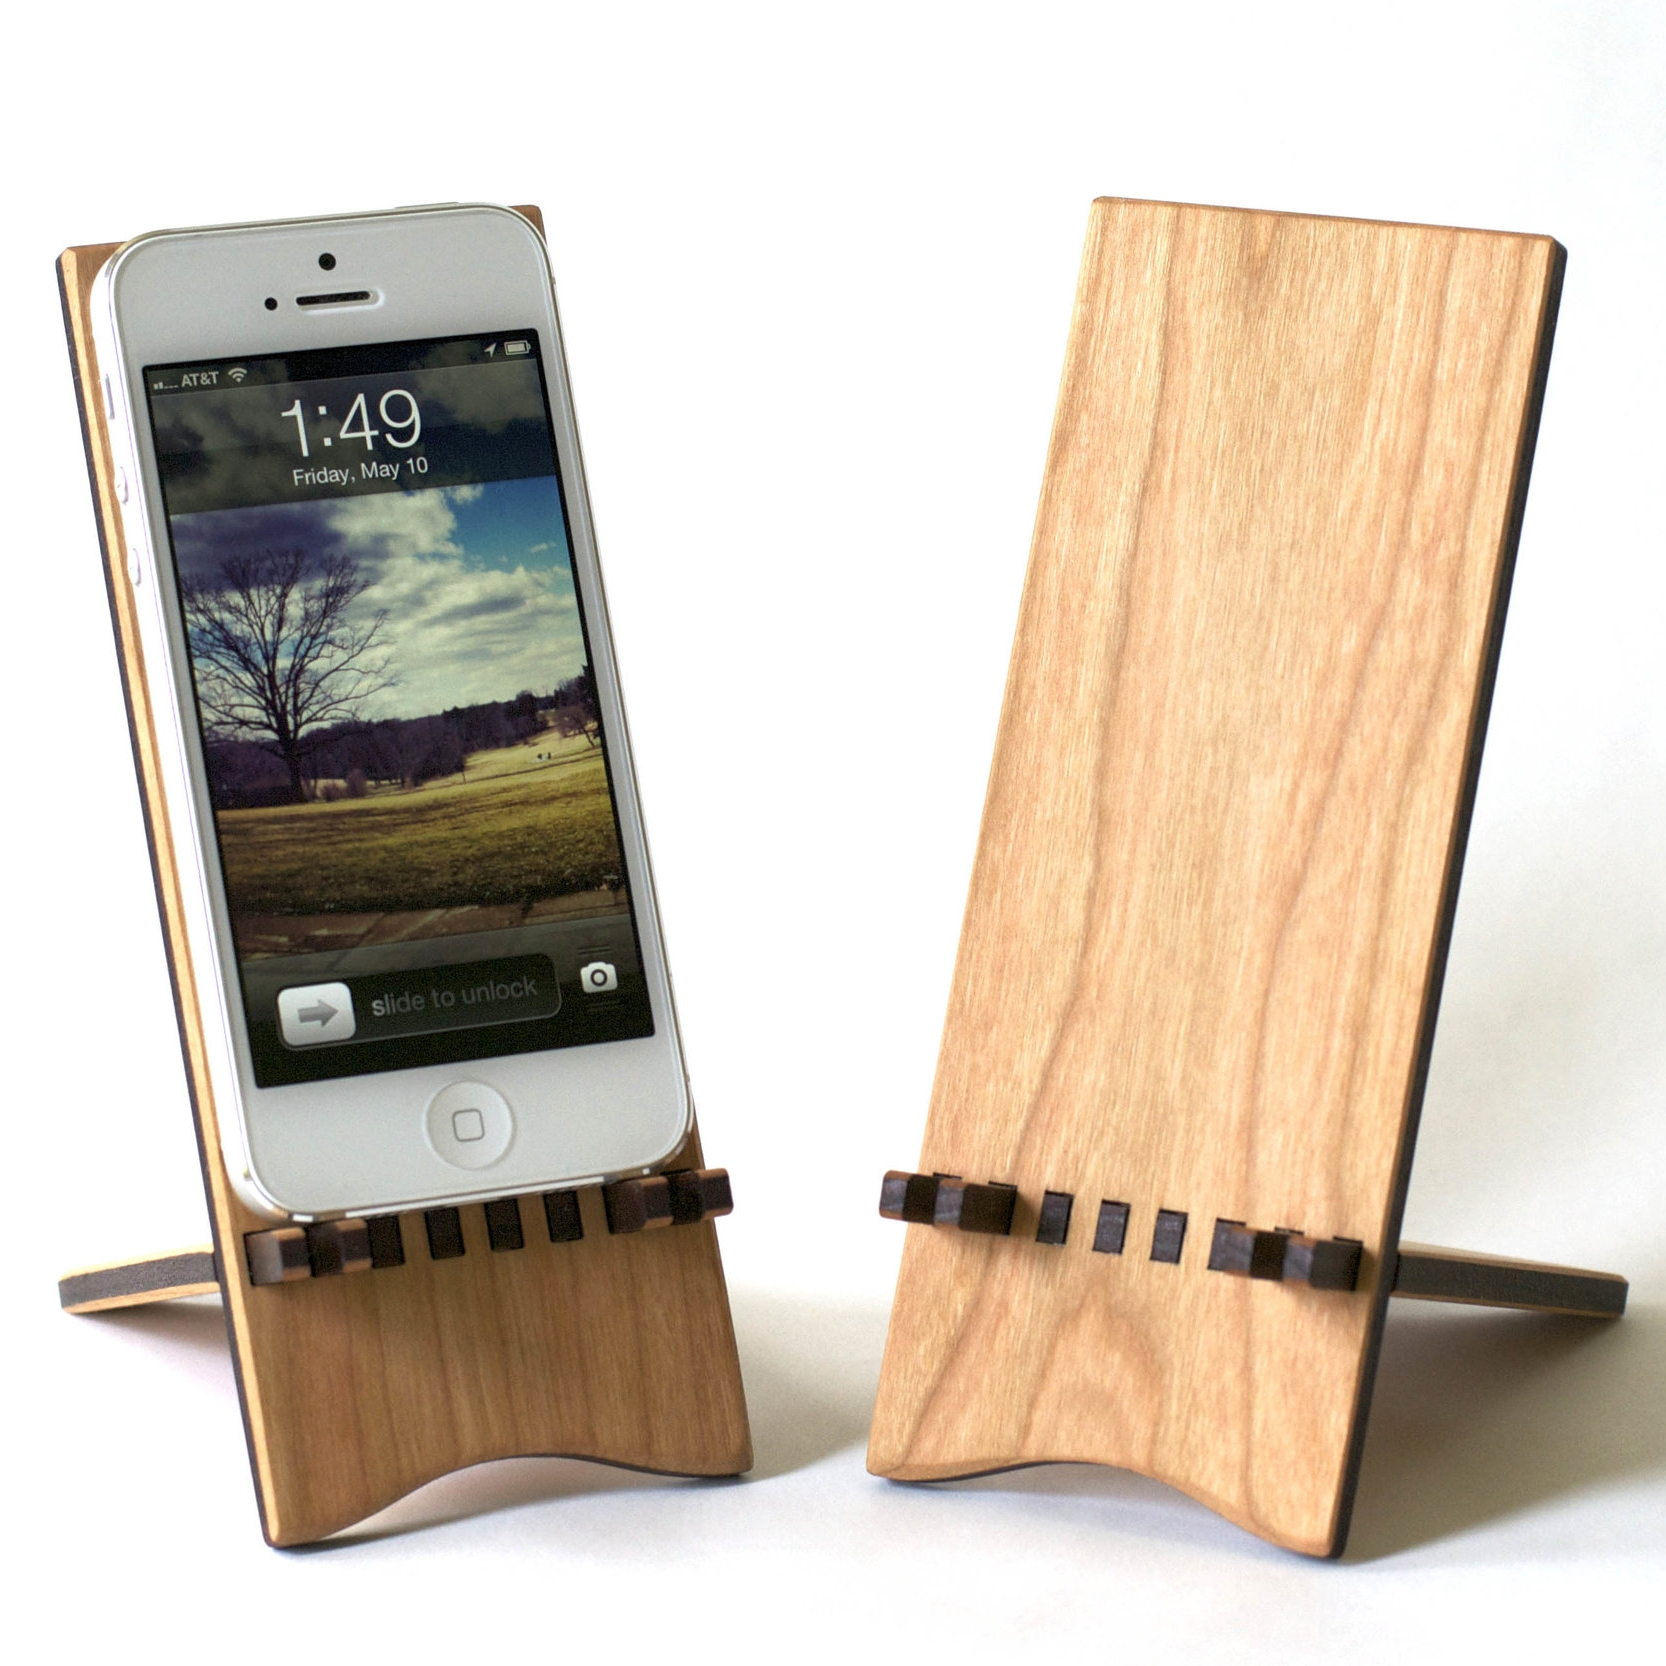 2. Smartphone Stand - This smartphone stand is useful and portable. The two pieces slide apart so it can be easily packed and taken wherever your graduate is headed. Help your graduate maintain easy access to his or her phone (which, let's be honest, is important to them!) whether they want to be able to see it while they are working on their computer, or on their bedside table while it charges.